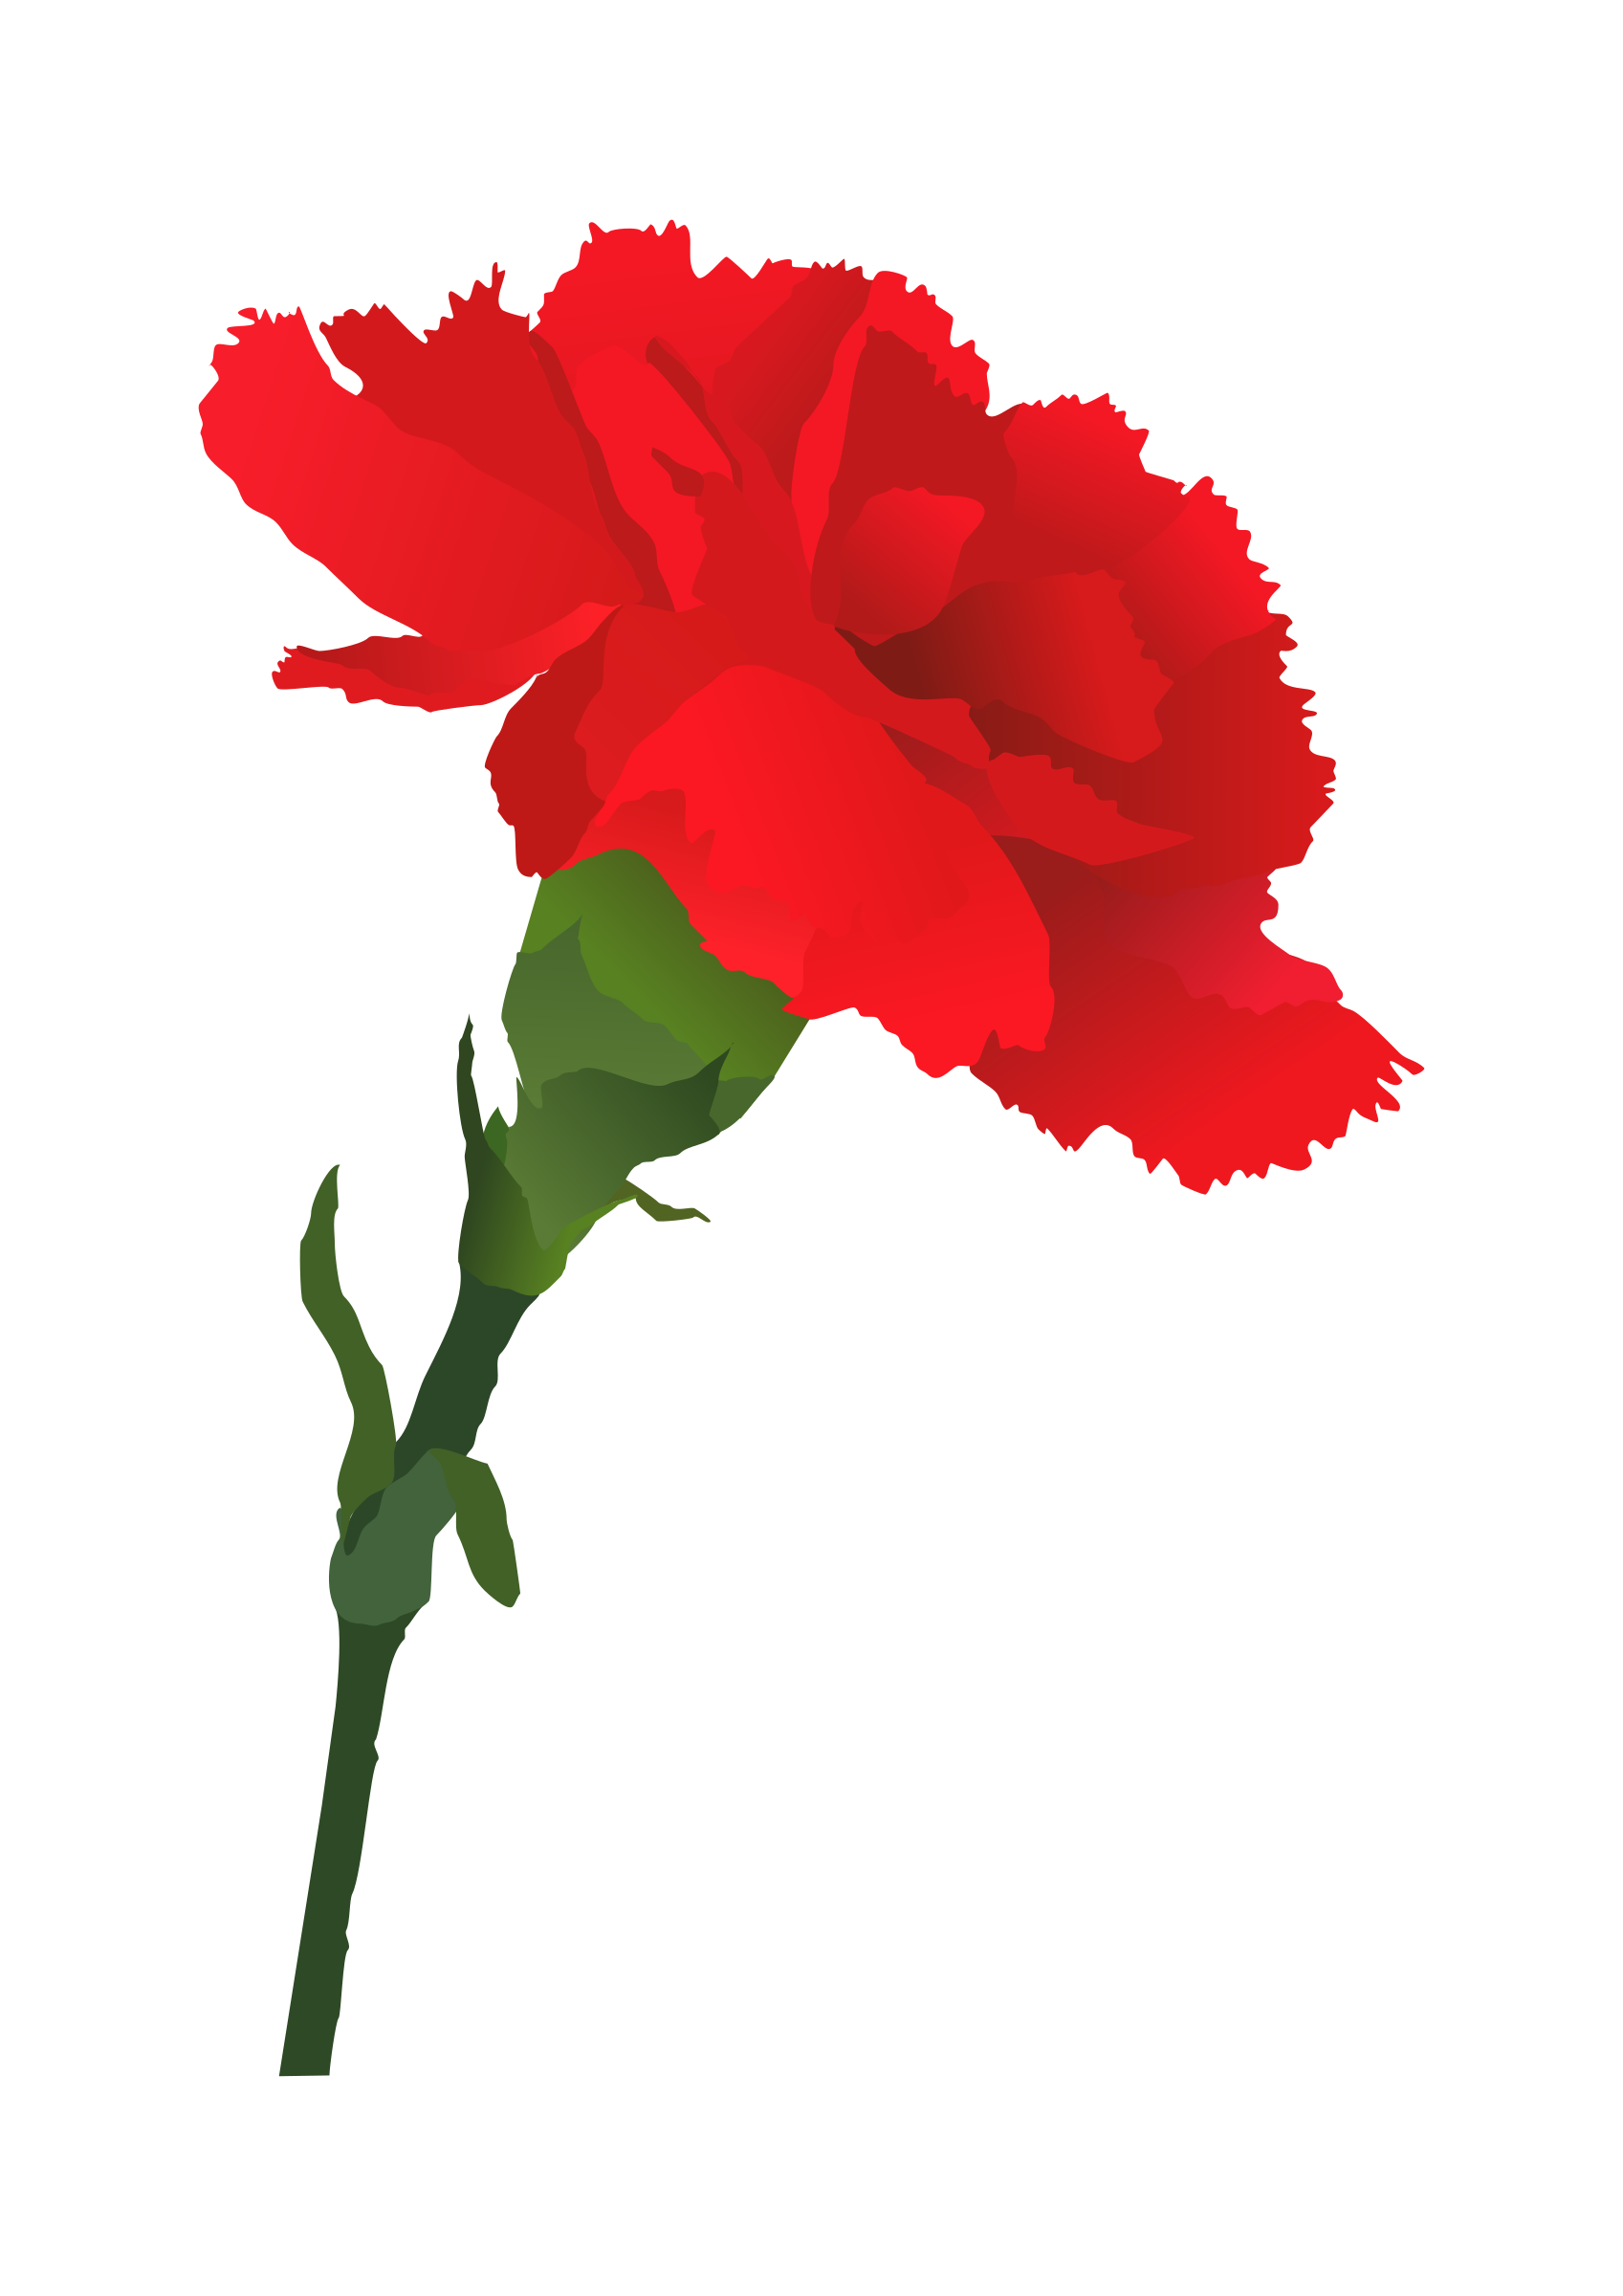 Petal drawing carnation. Red displaying images for